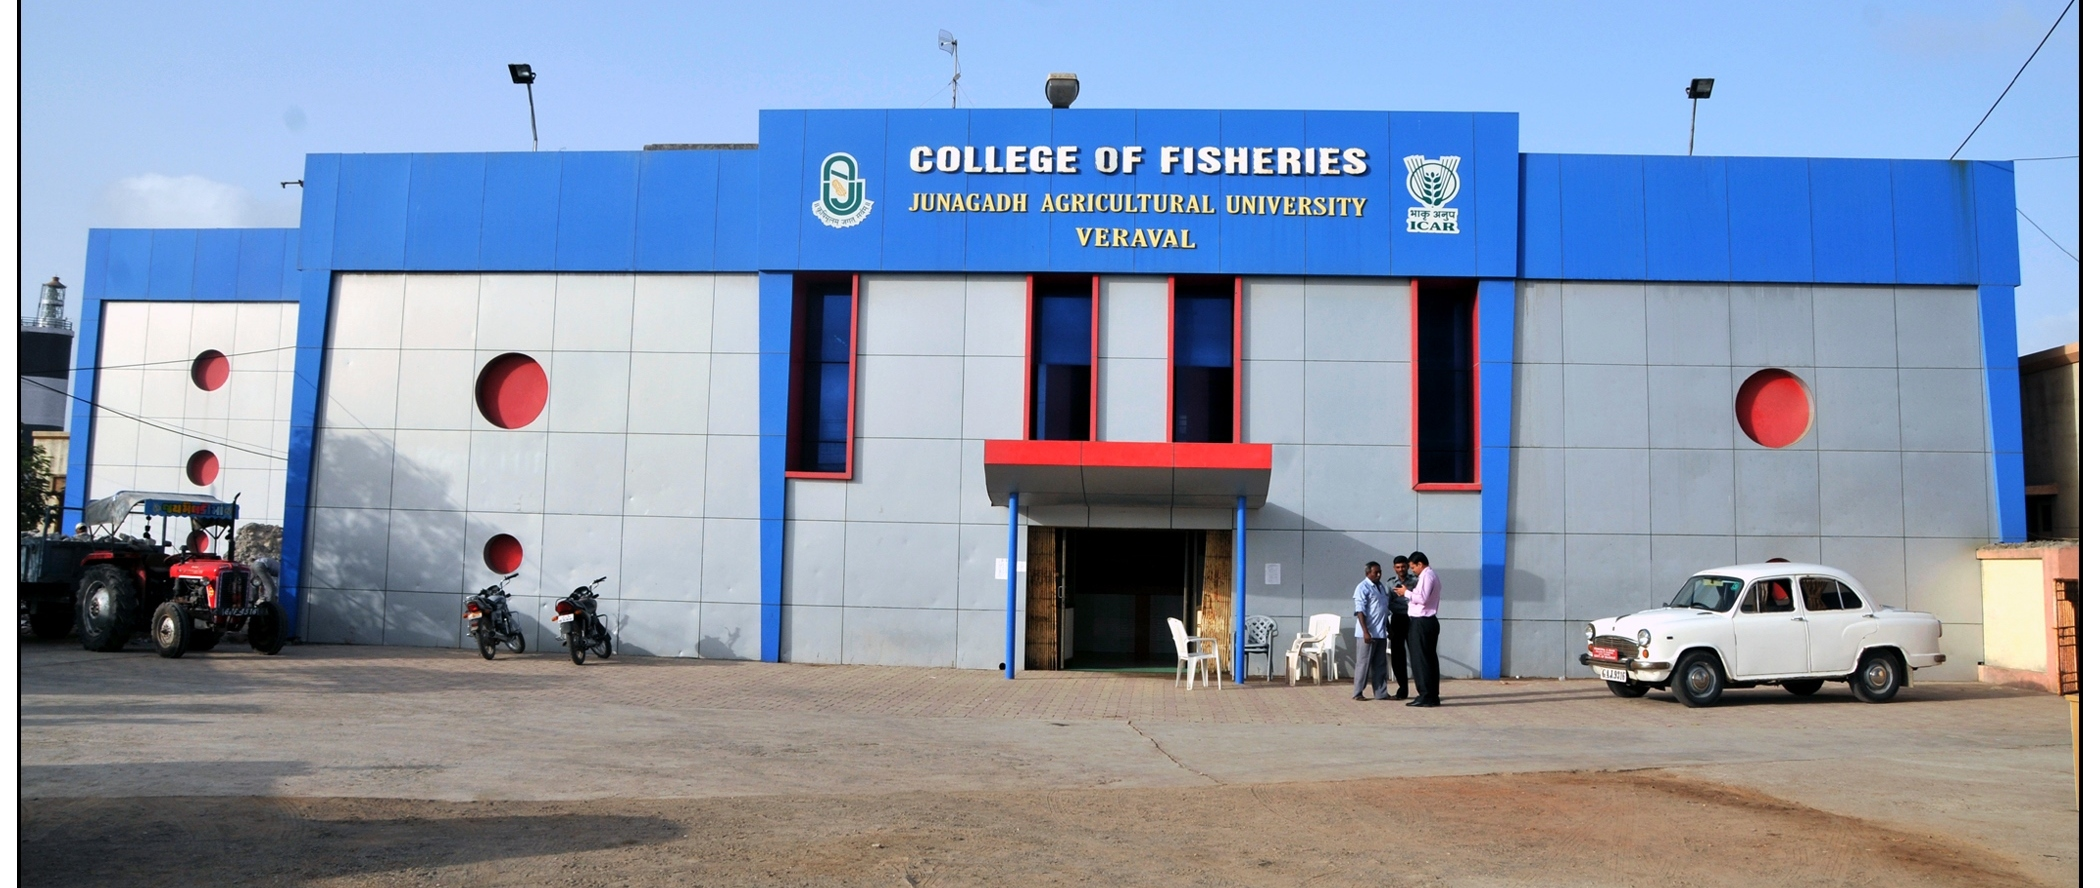 College Of Fisheries, Veraval Image